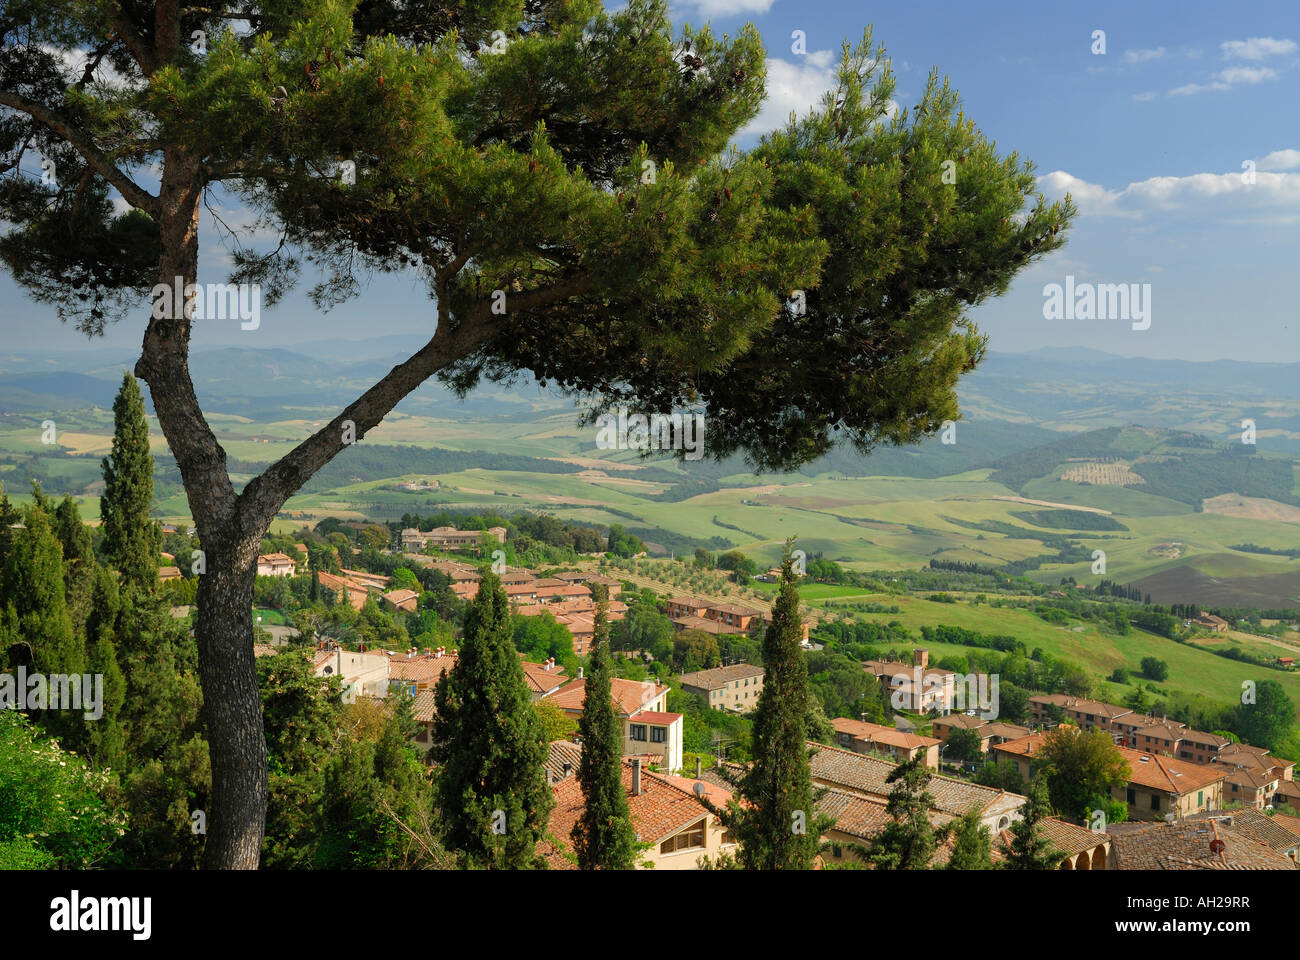 Pine tree overlooking Volterra and the Cecina Valley from hilltop in Tuscany Italy - Stock Image